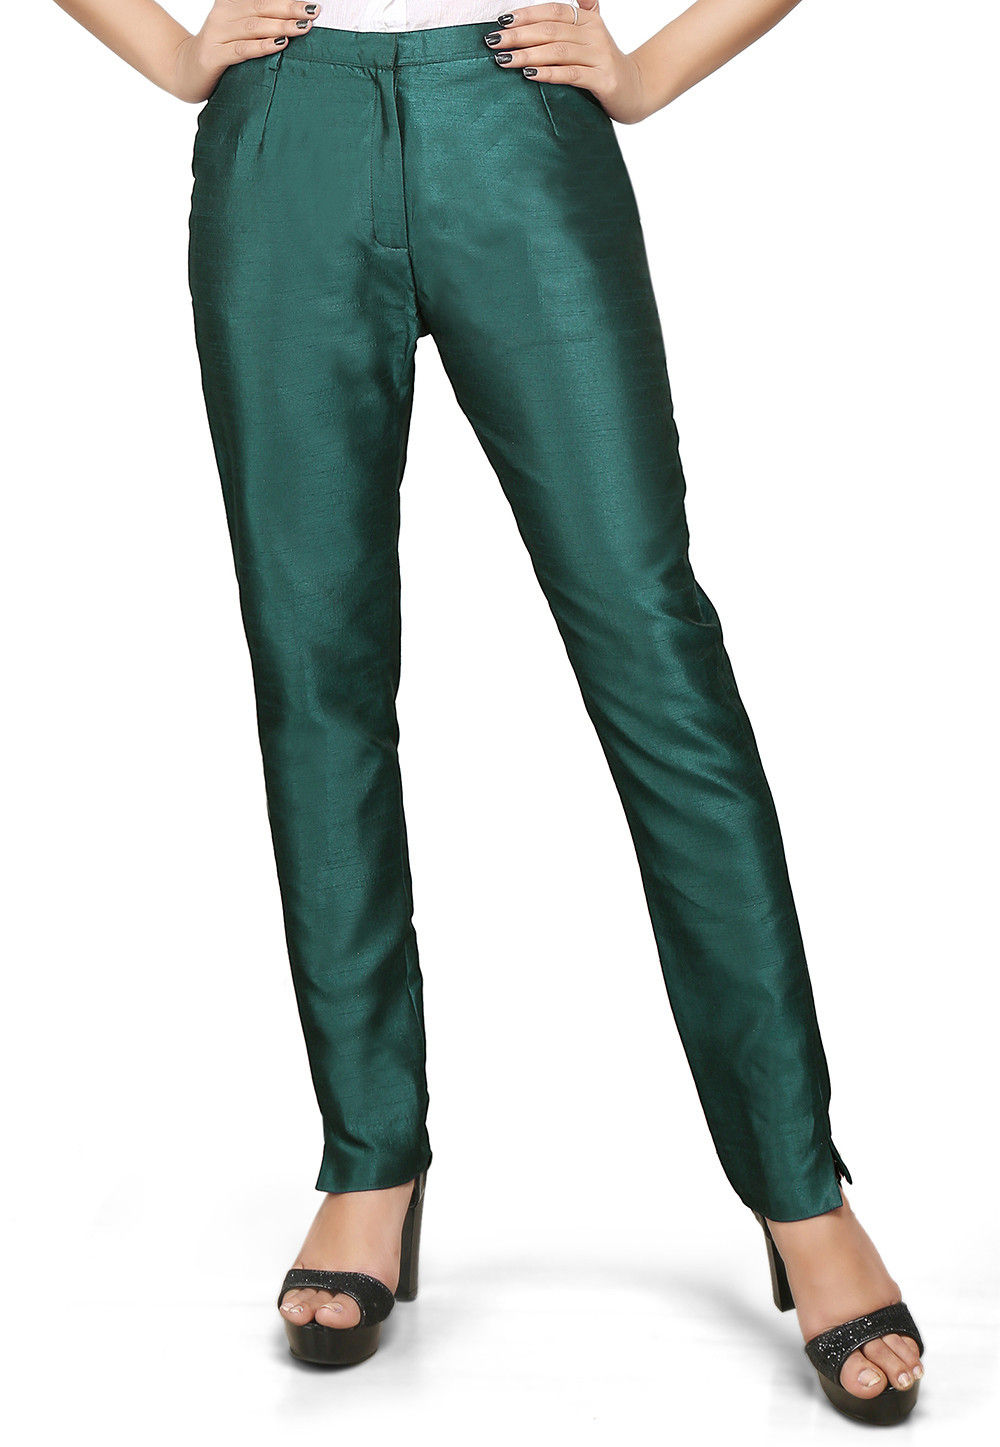 Art Silk Straight Pant in Teal Blue